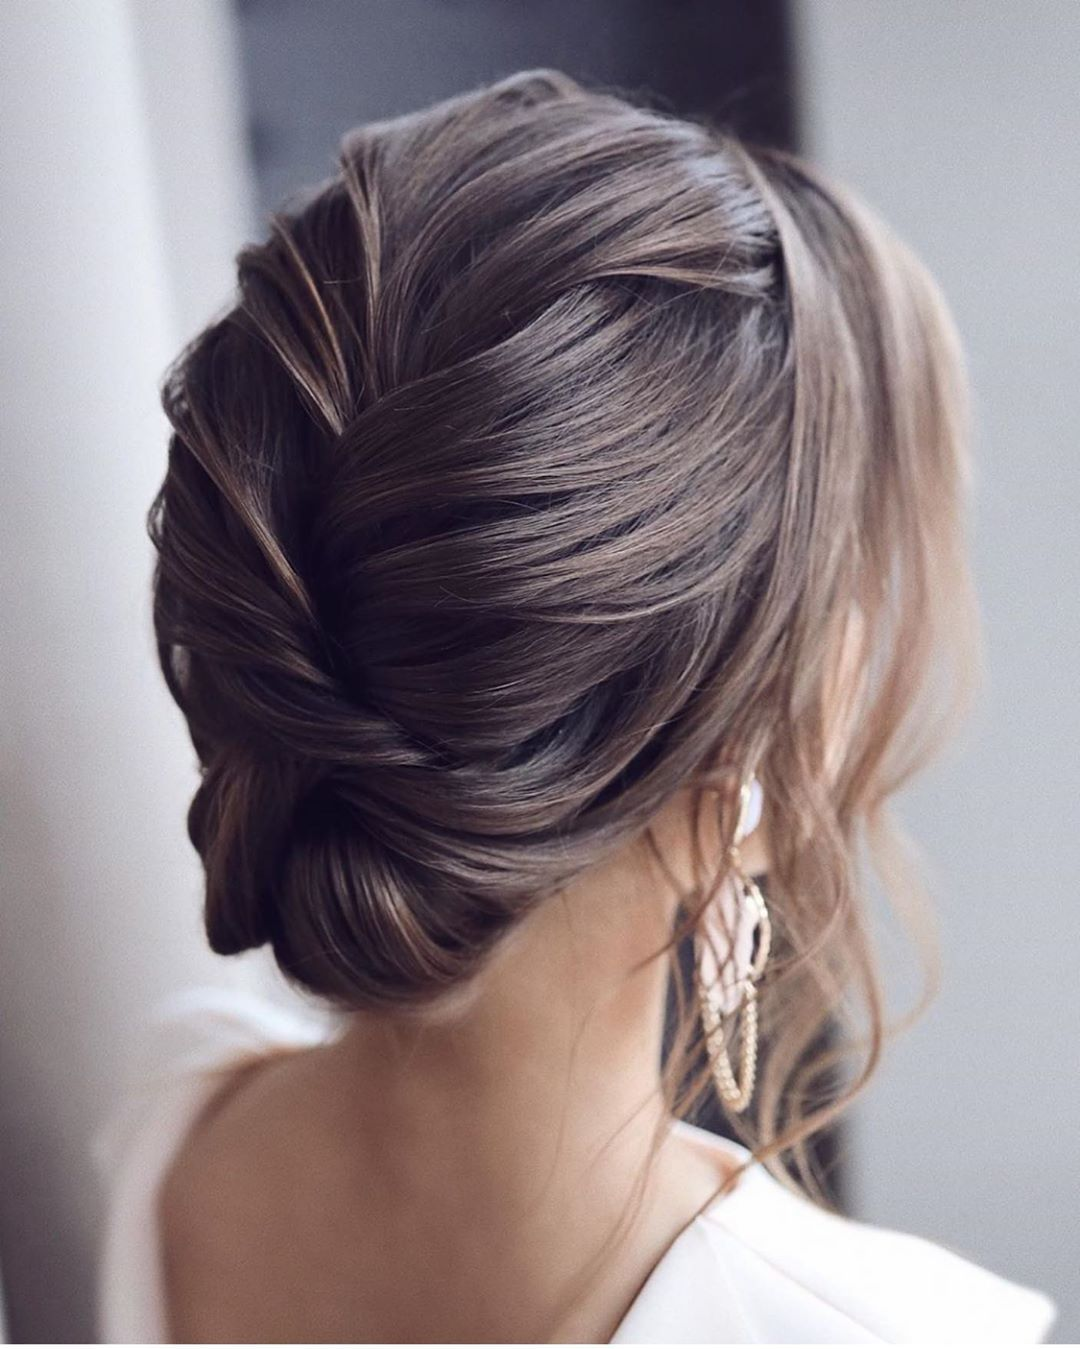 55 Hairstyles For Medium Length hair & Haircuts for Women